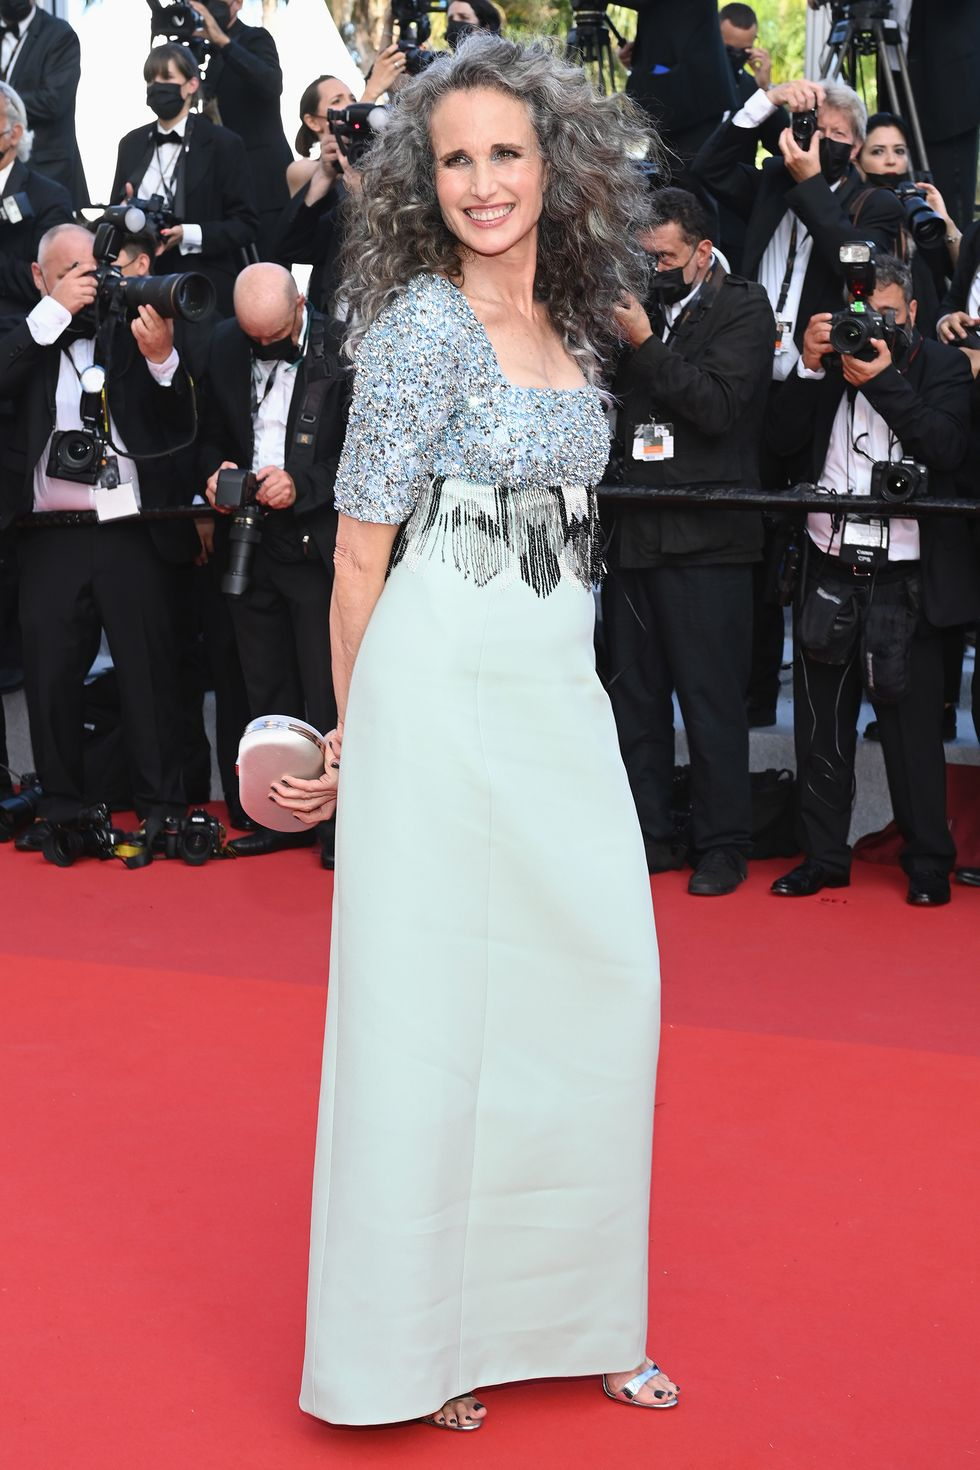 Andy McDowell The actress wore a classic silver-gray dress with an embellished bodice, and curly hair in natural tones.